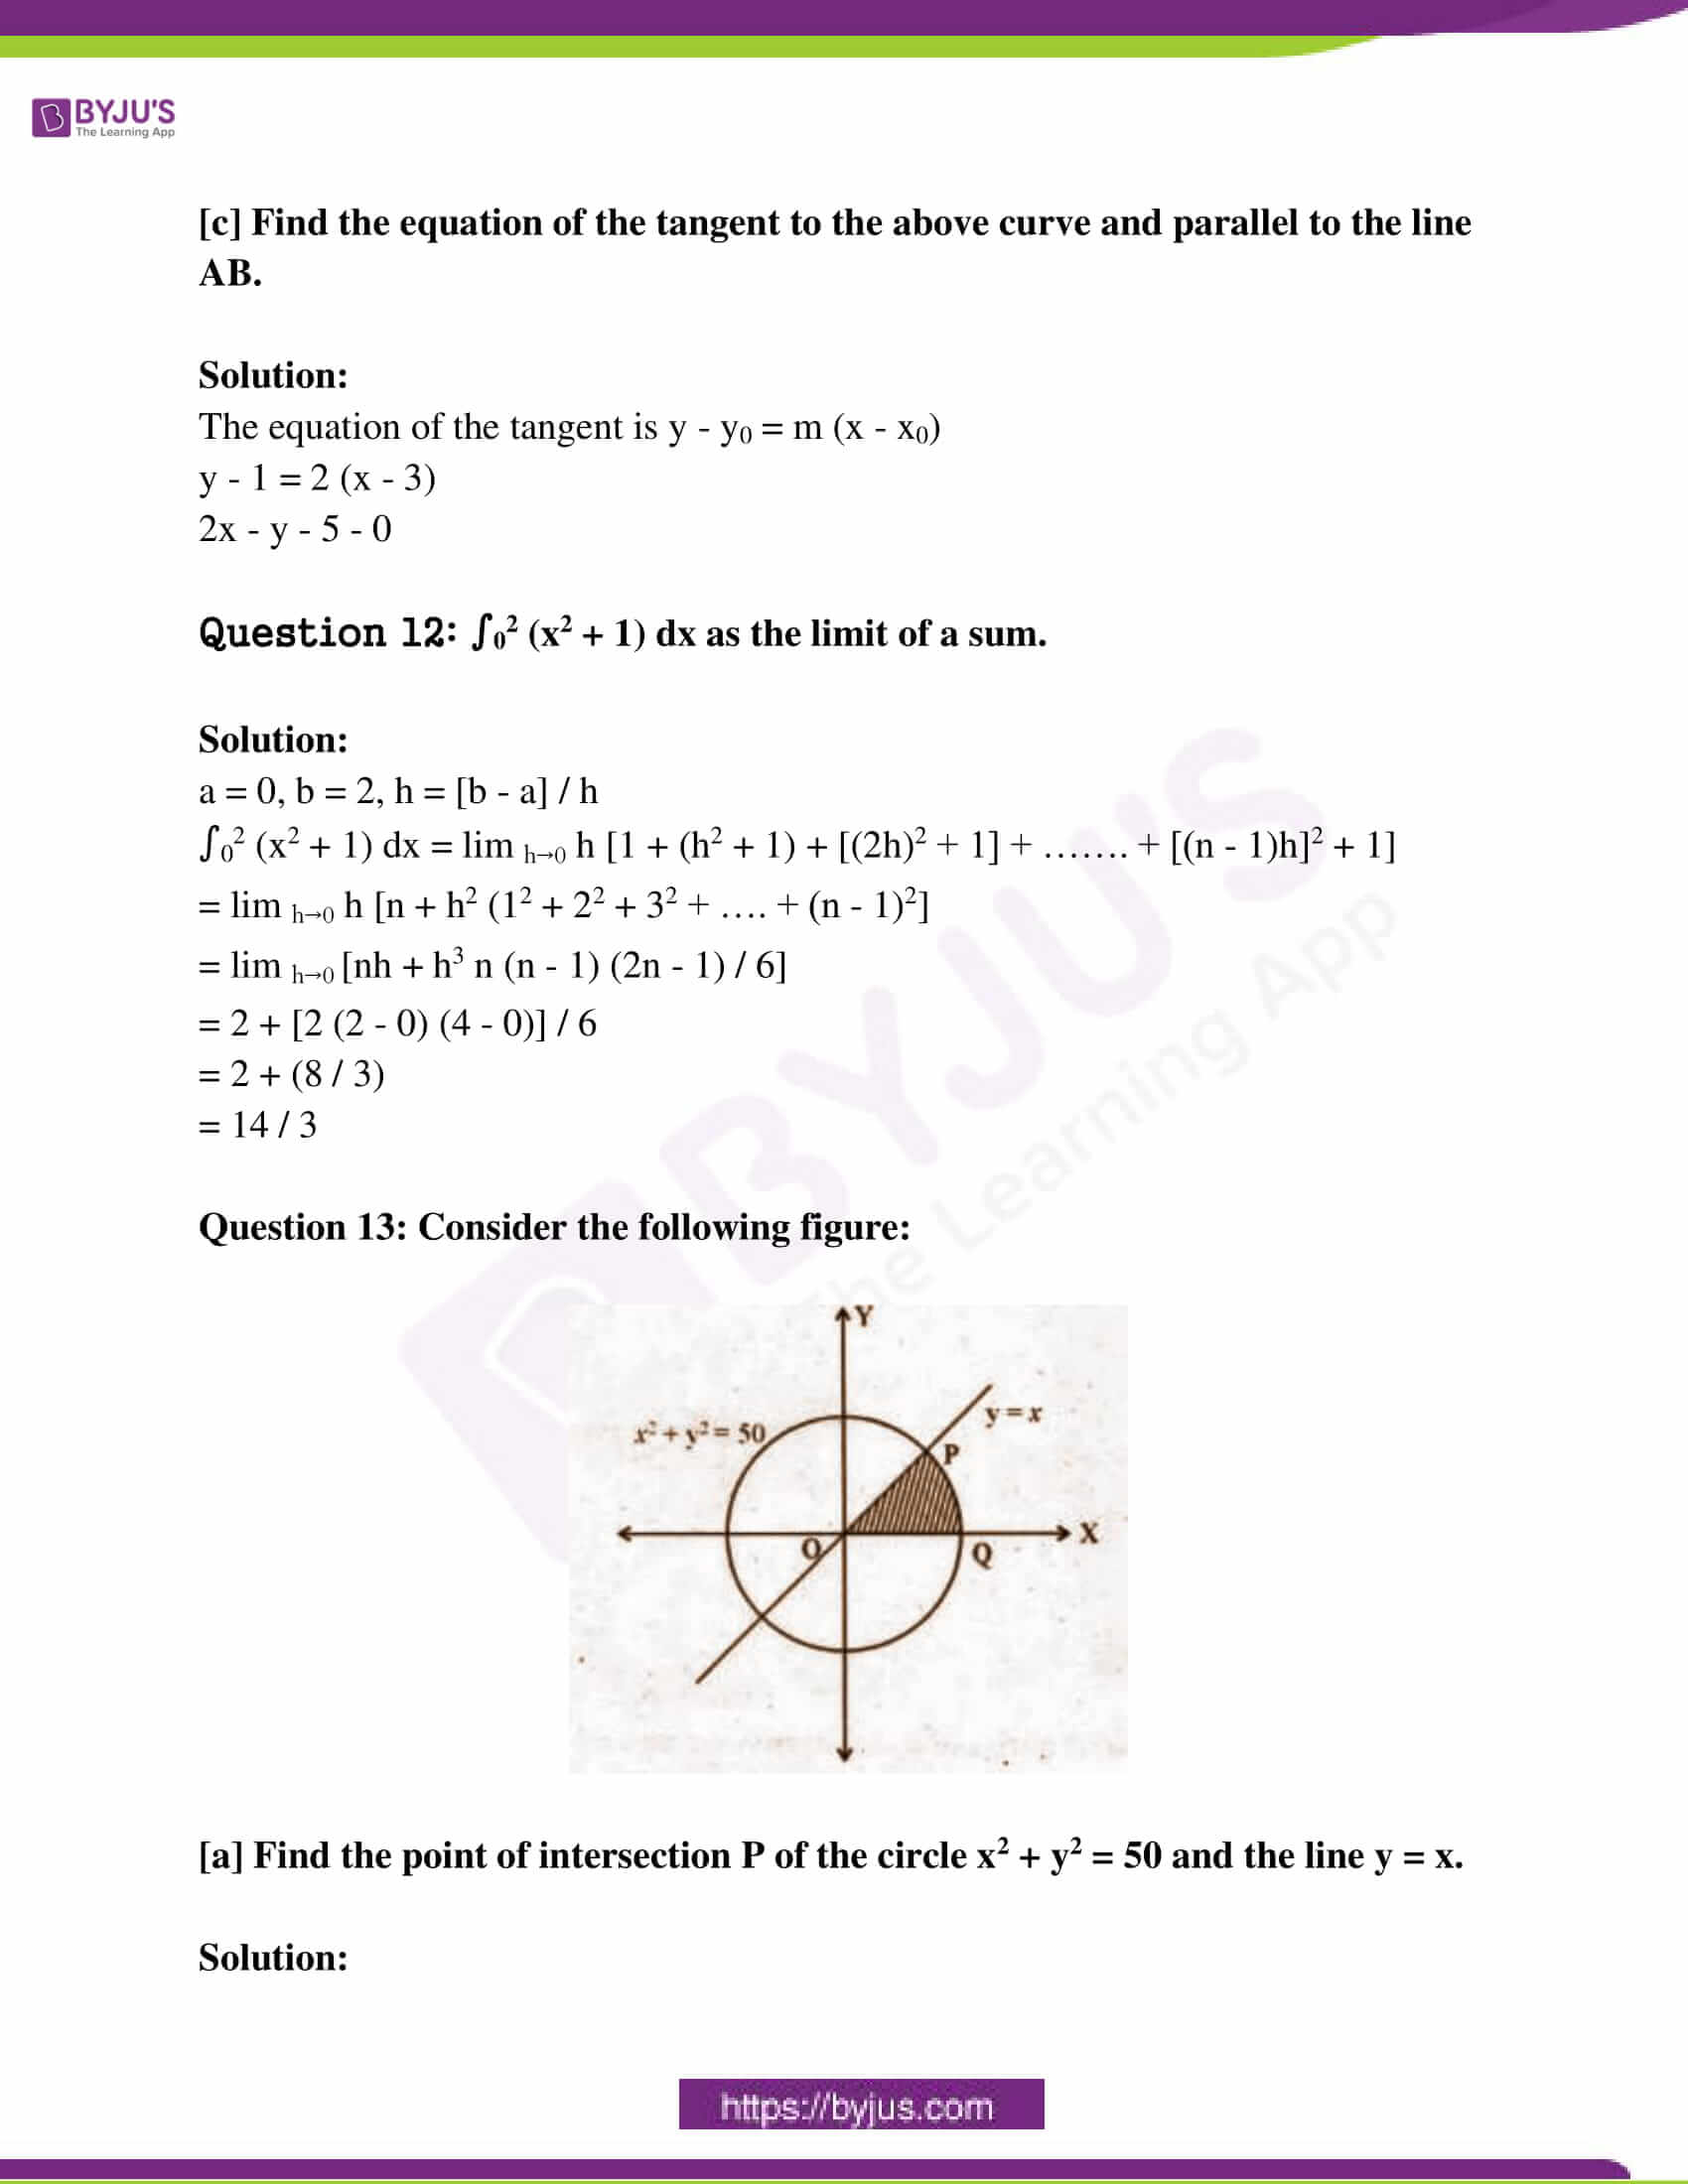 kerala class 12 examination question paper solutions march 2018 08